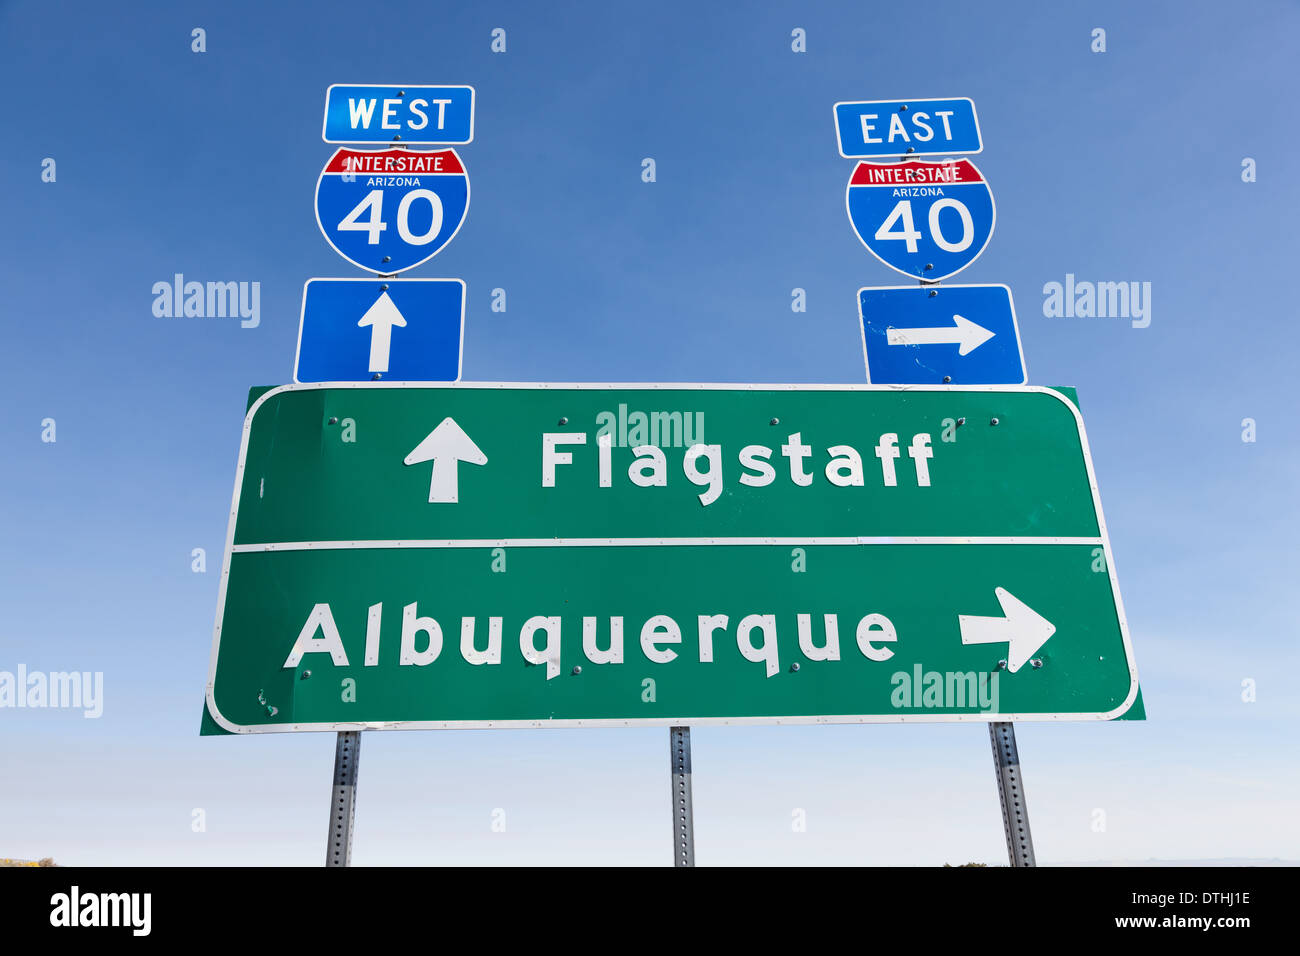 US Interstate I-40 road sign in Arizona with a sky blue